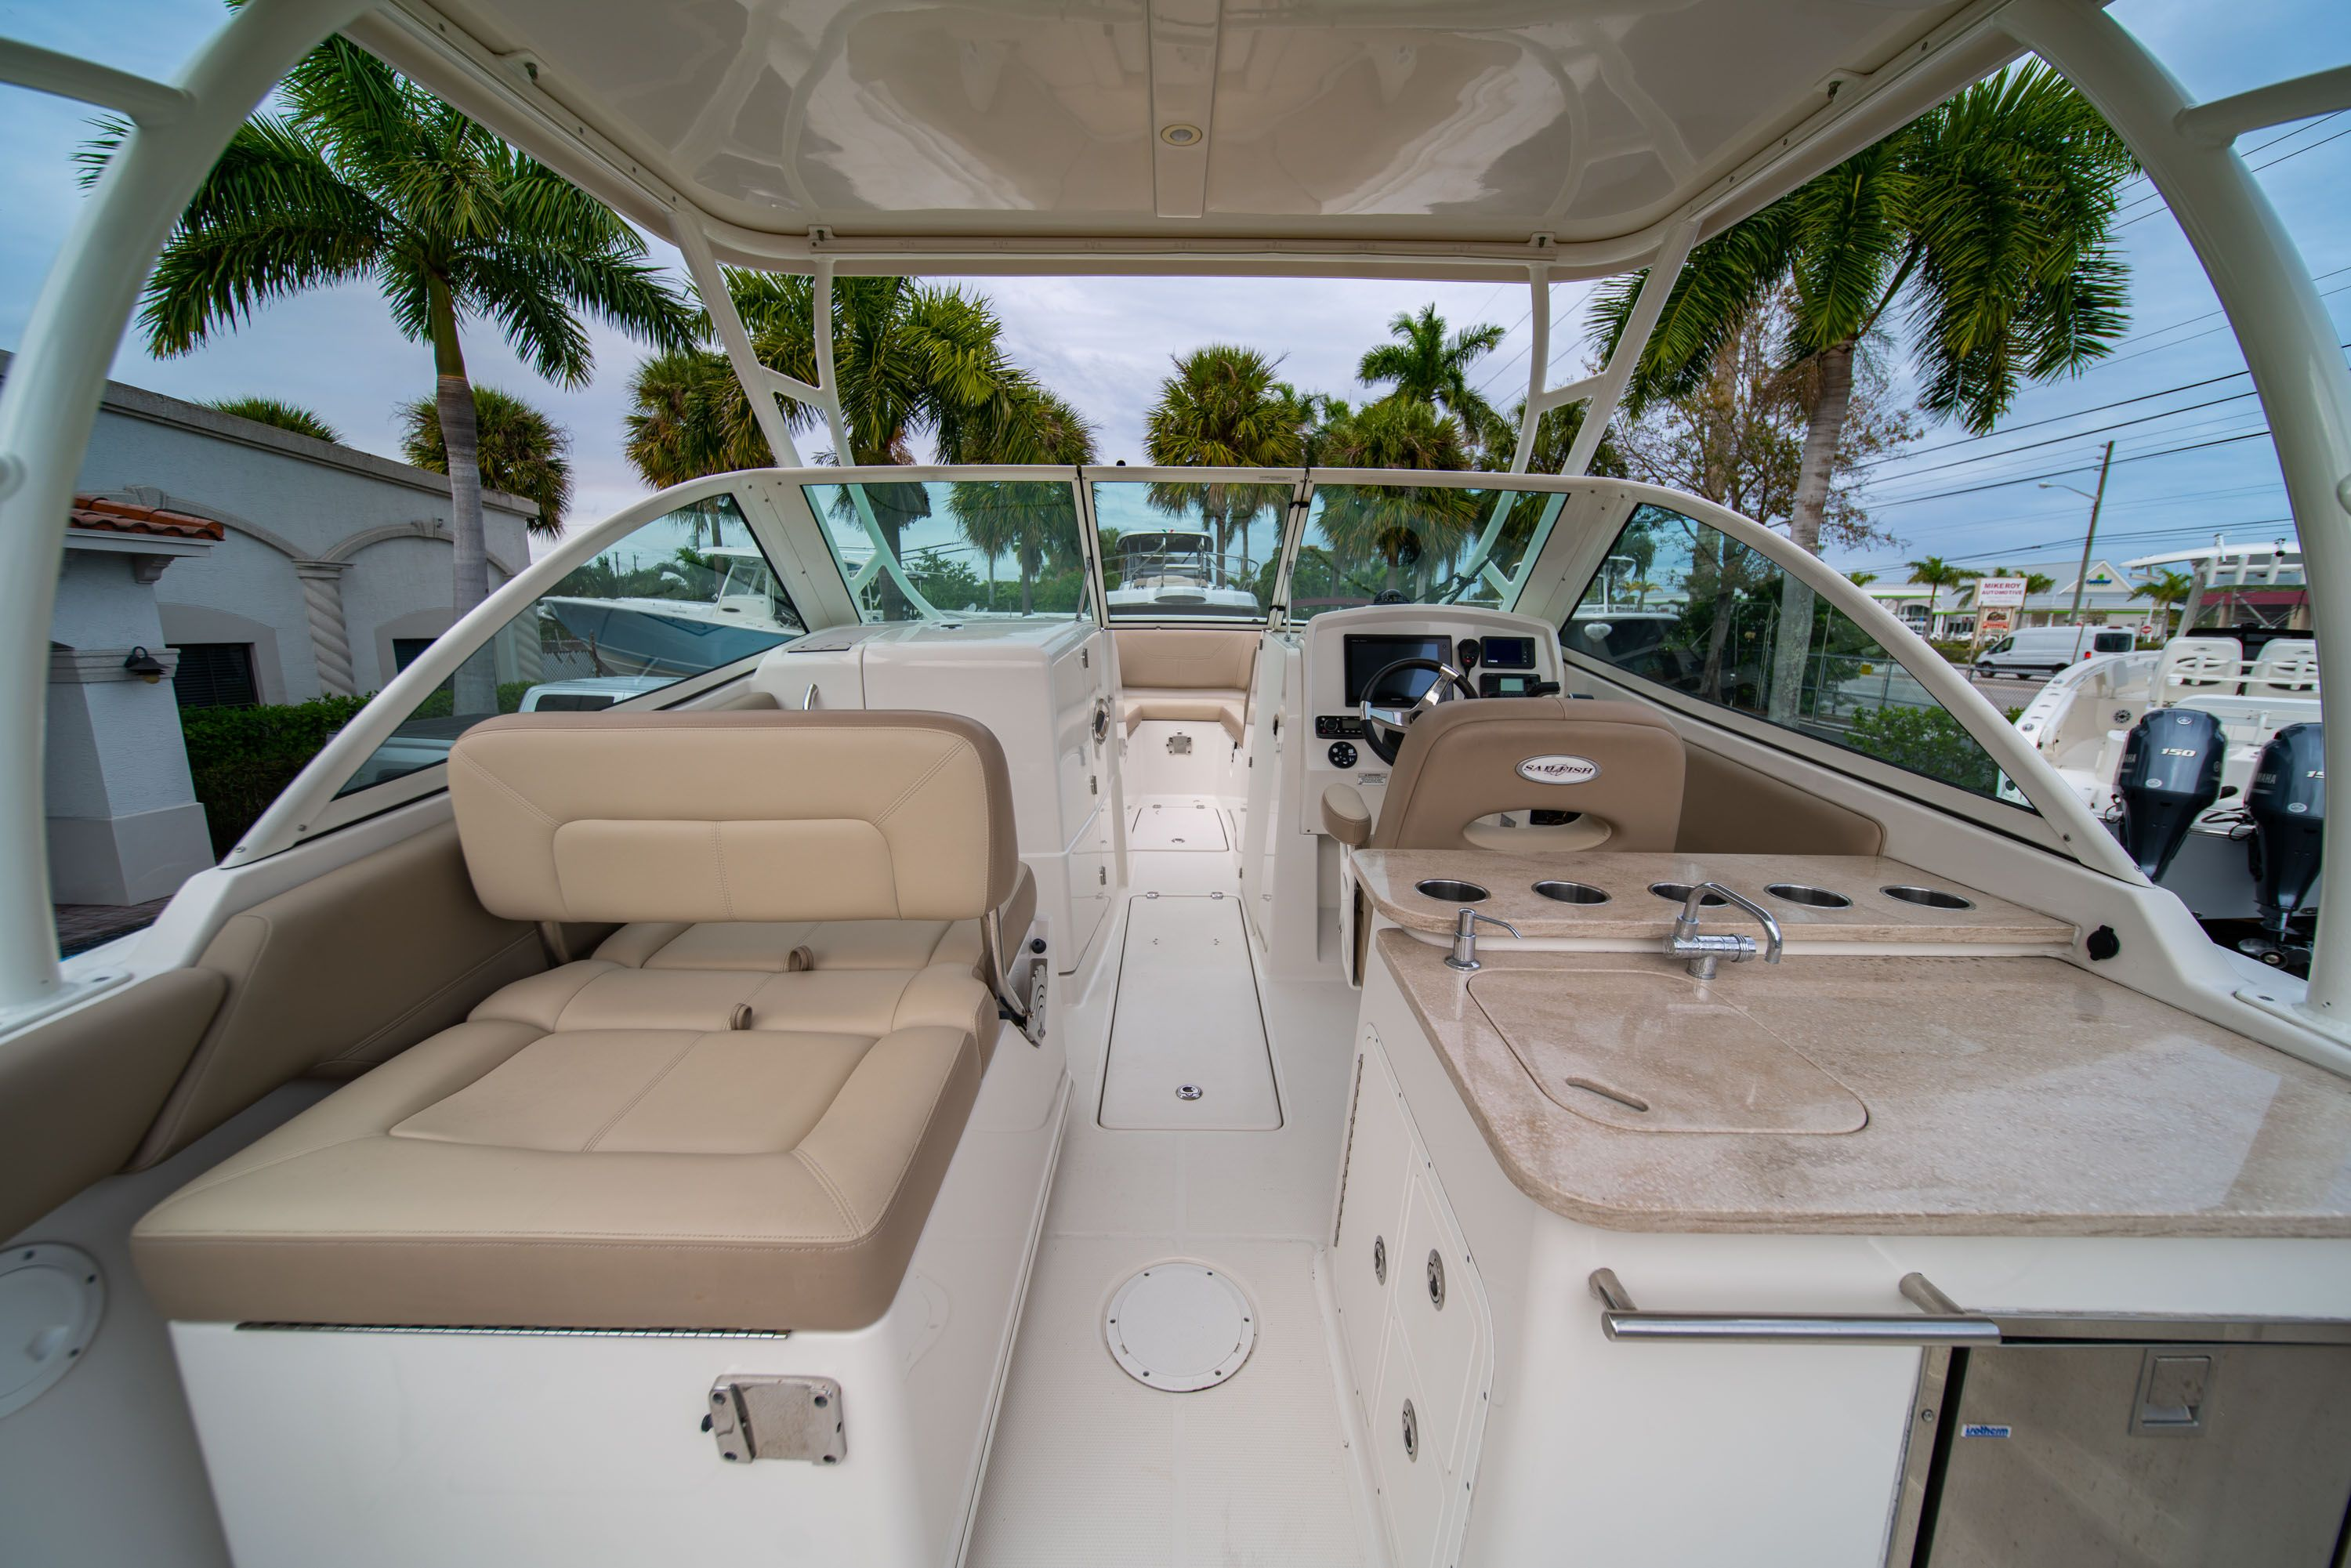 Thumbnail 25 for Used 2017 Sailfish 275 Dual Console boat for sale in West Palm Beach, FL